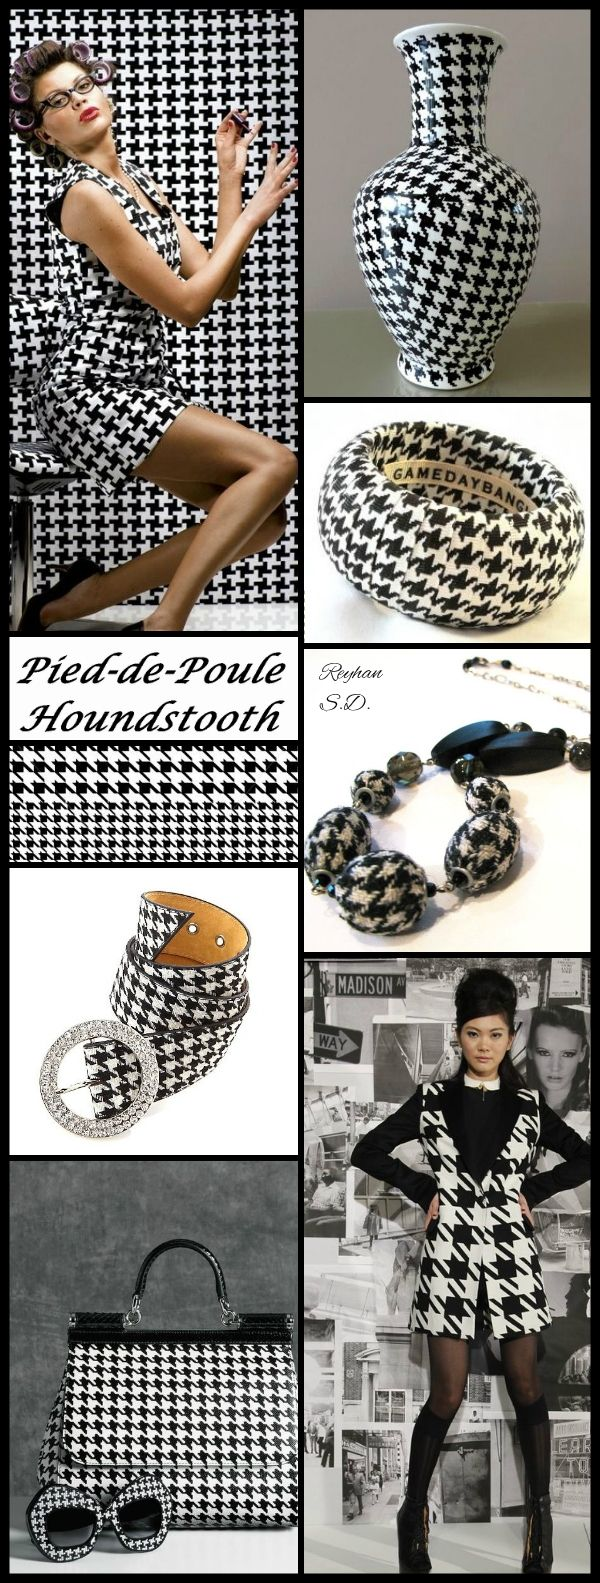 39 39 pied de poule houndstooth 39 39 by reyhan s d schwarz - Farbmuster wandfarbe ...